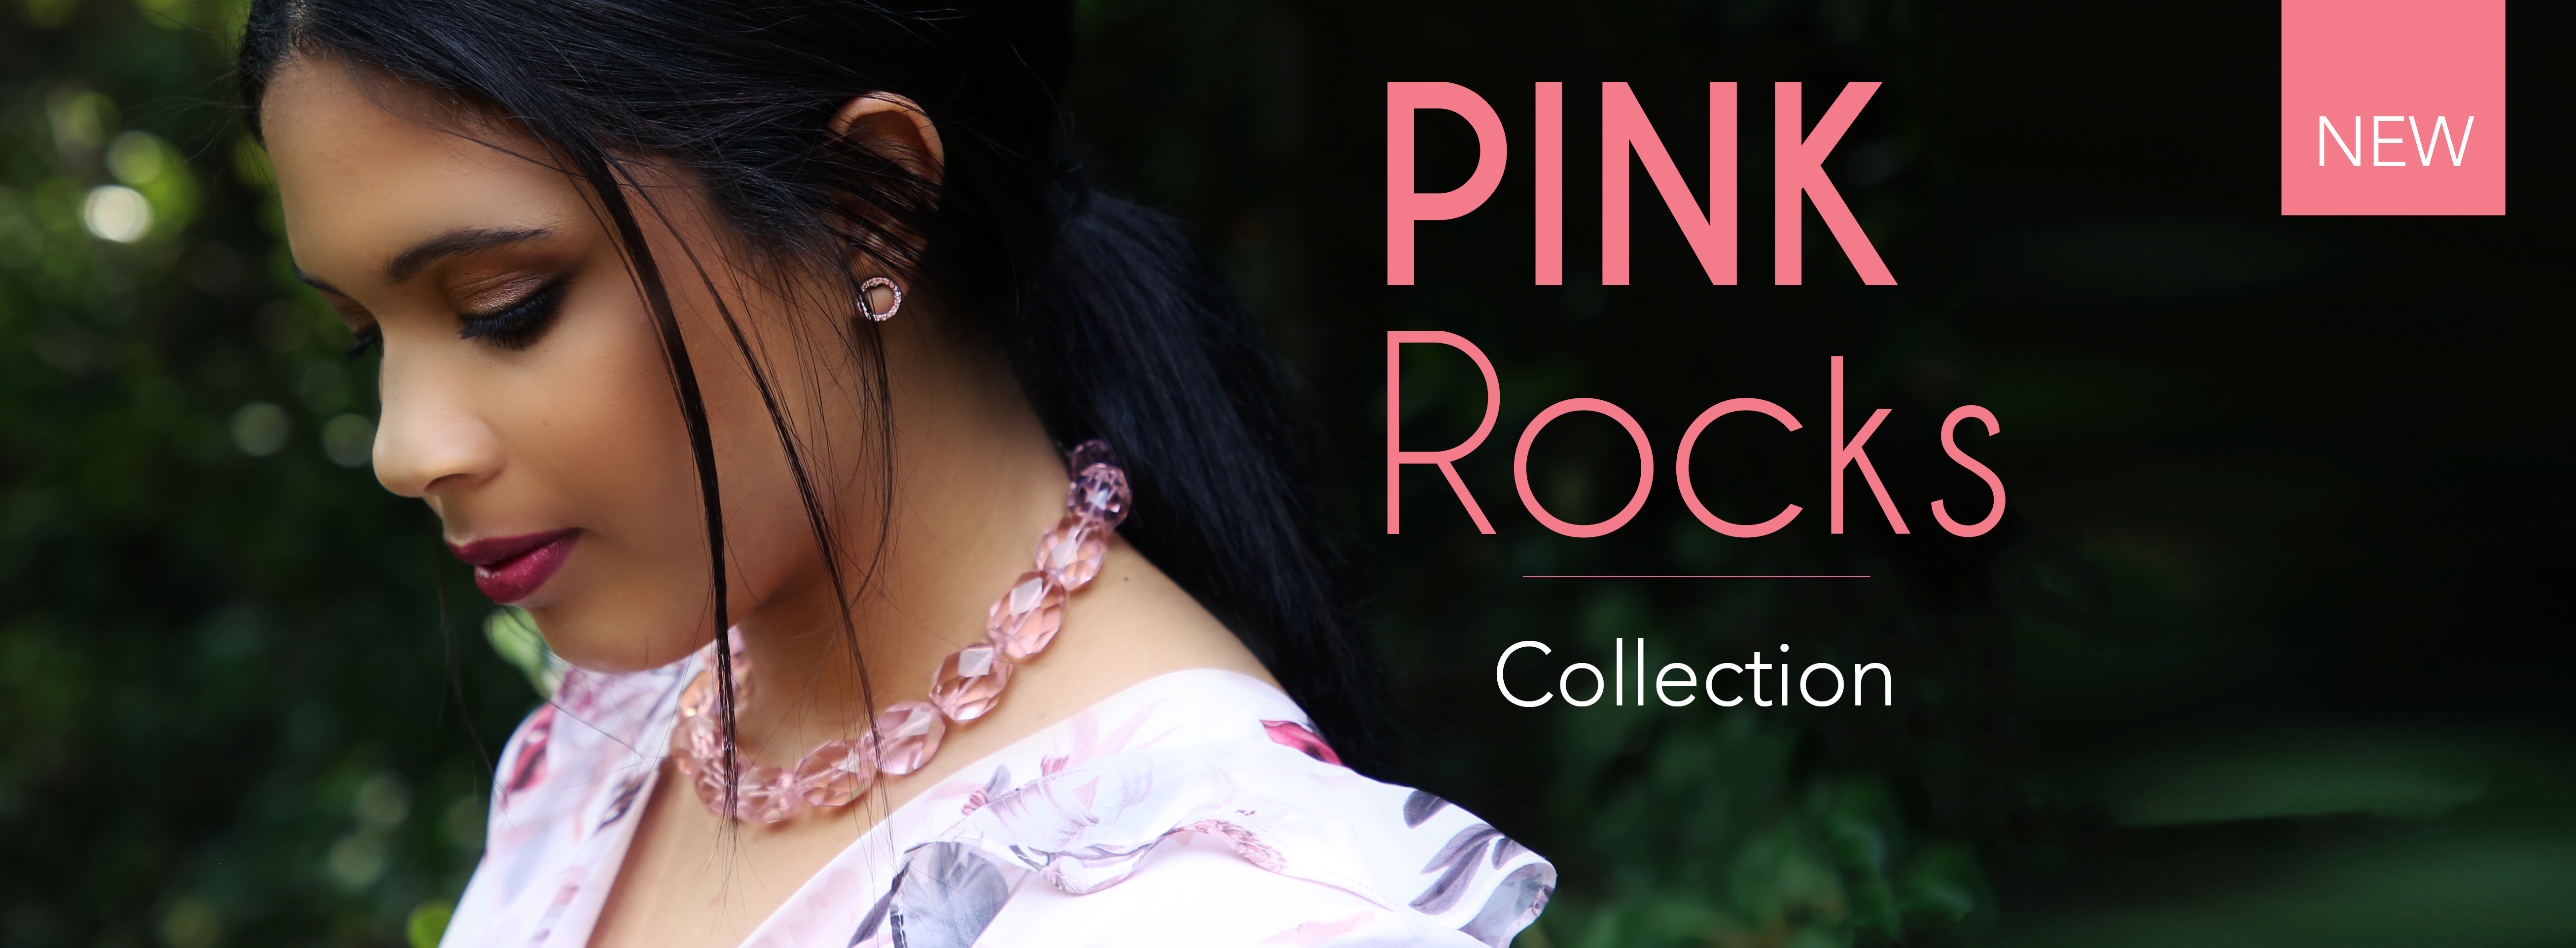 new-pink-rocks-collection.jpg